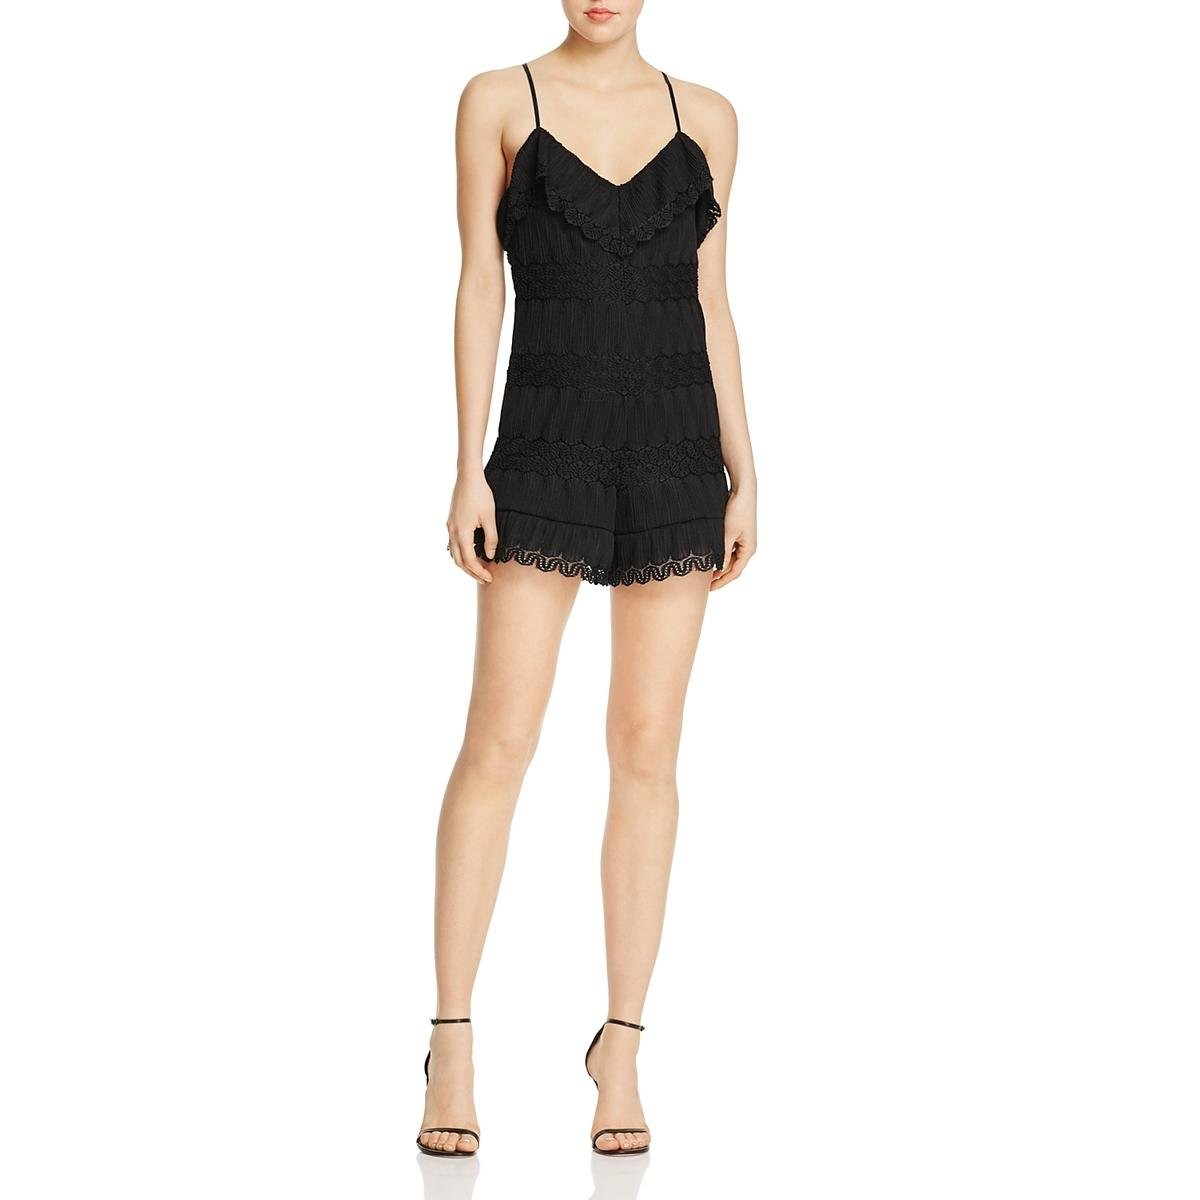 GUESS Women's Sleeveless Vita Ruffled Romper, Jet Black a, X-Small by GUESS (Image #1)